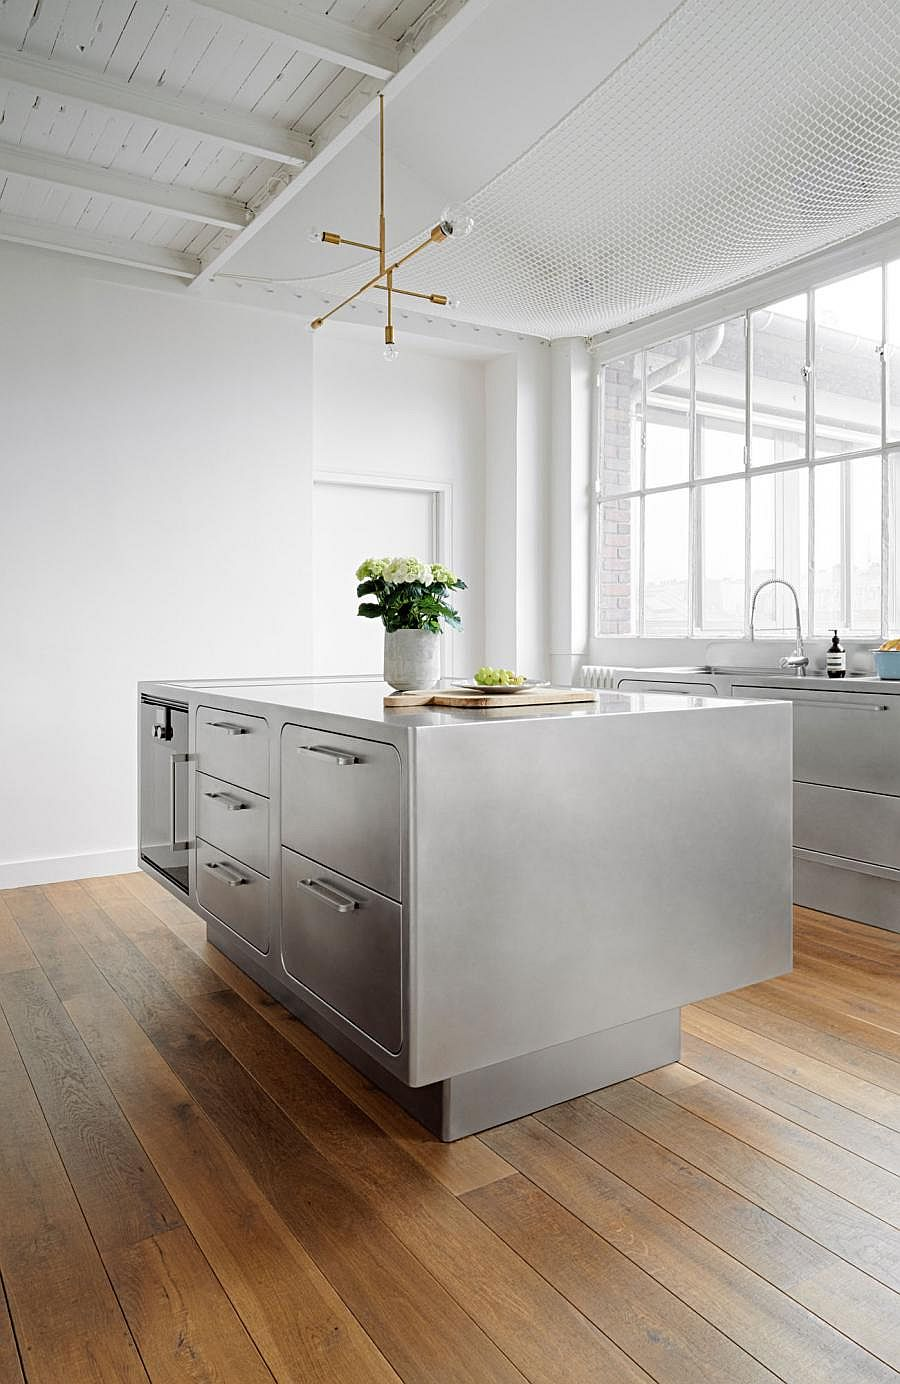 Base of the stainless steel kitchen island gives it a breezy appeal